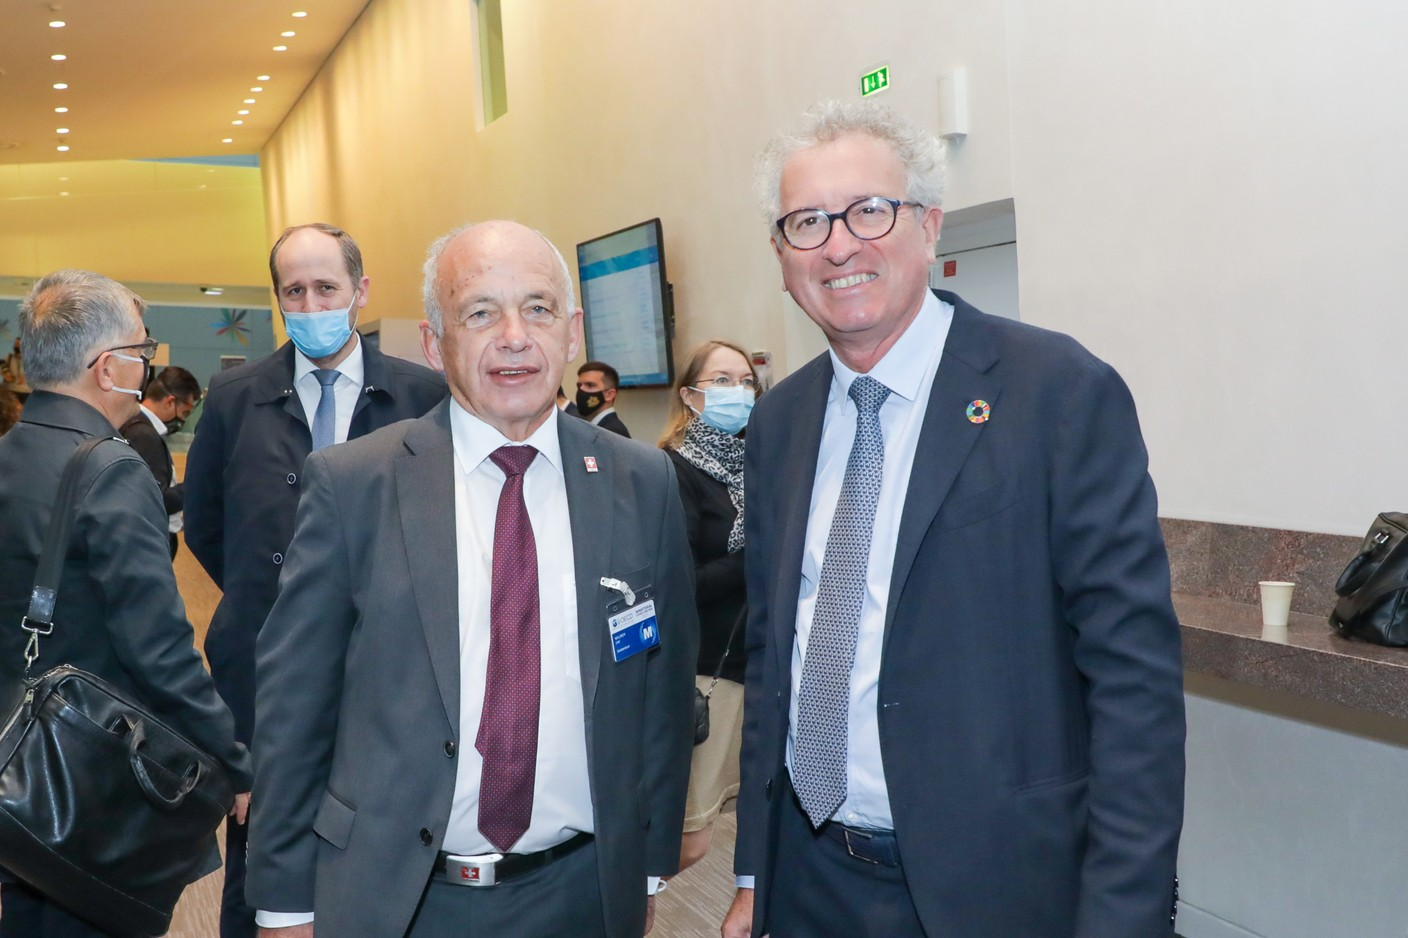 (from left to right) Maurer Ueli, Minister of Finance of the Swiss Confederation; Pierre Gramegna, Minister of Finance SIP/LUC DEFLORENNE